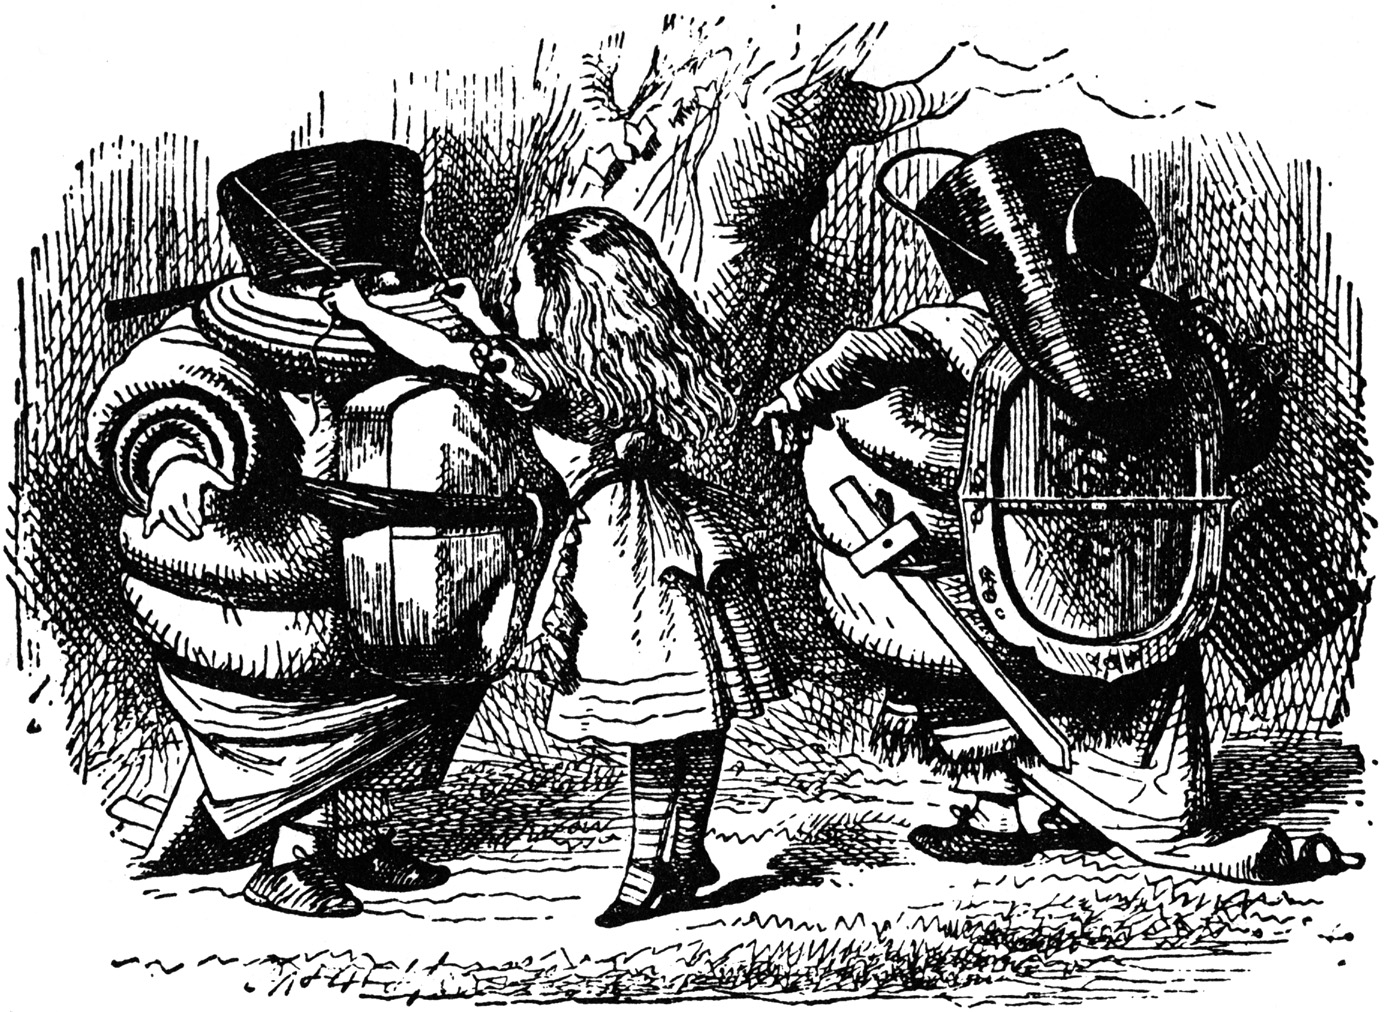 Alice preparing Tweedledum and Tweedledee for battle